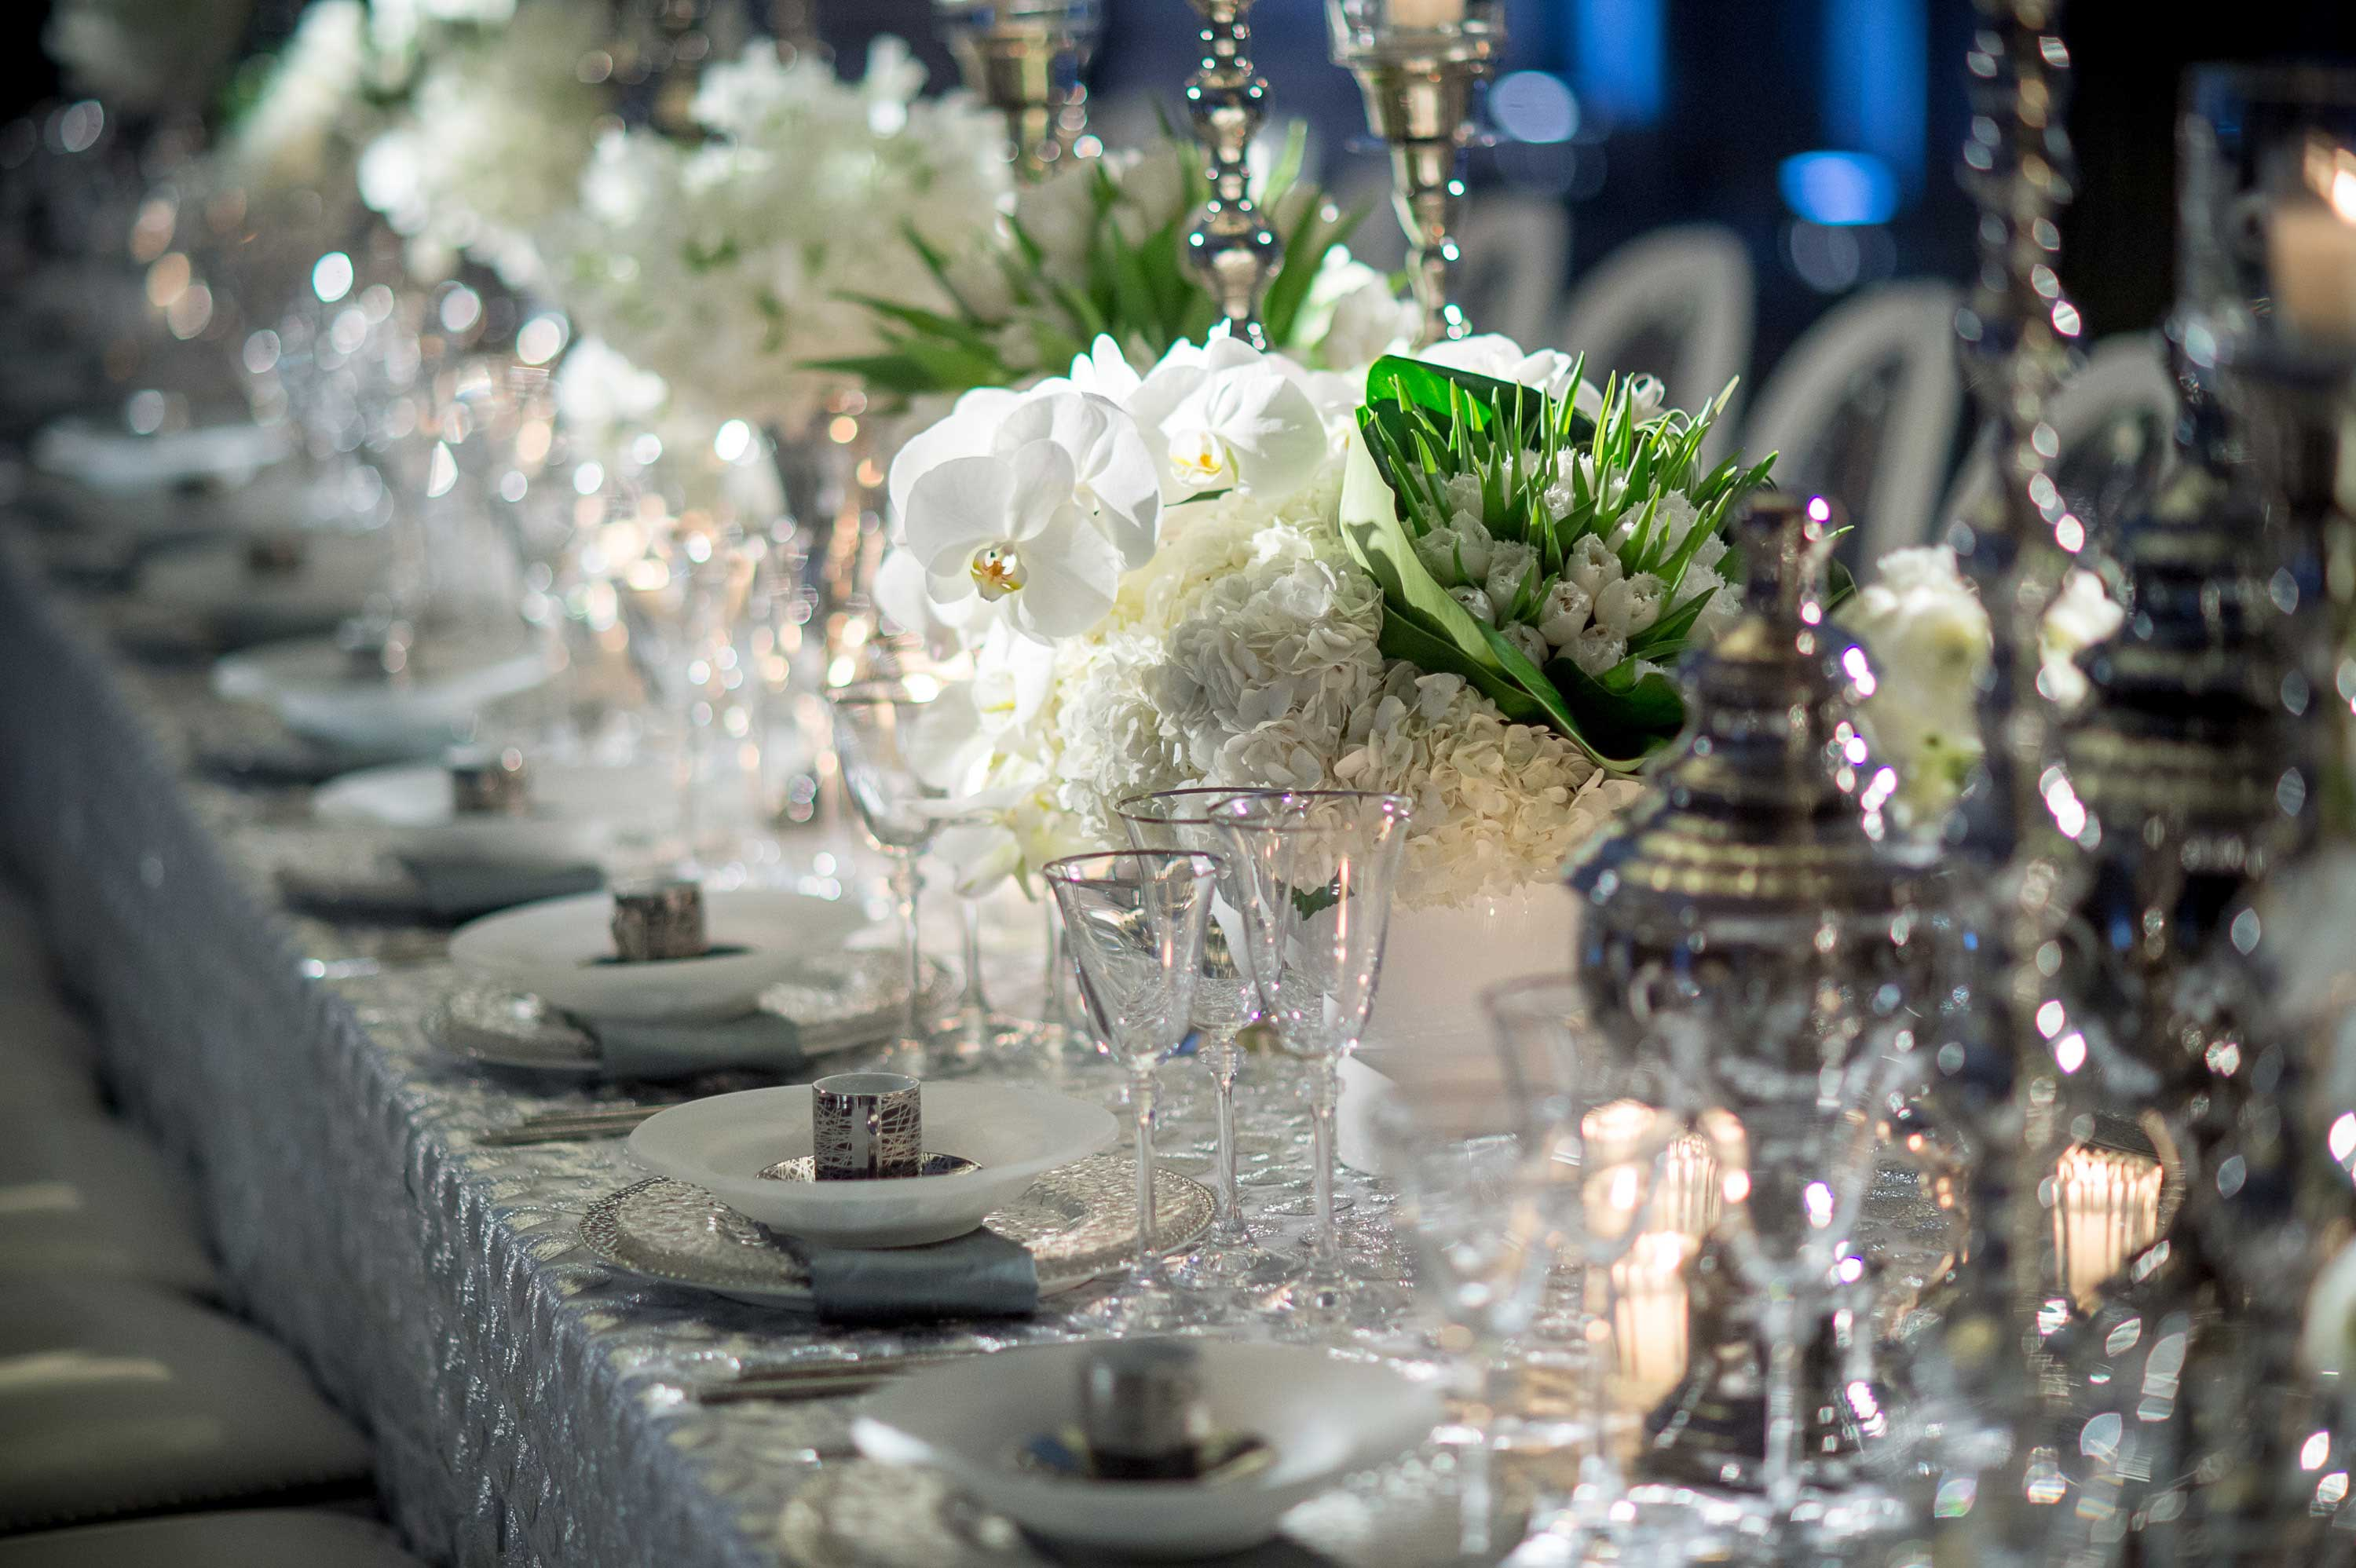 Winter Tablescape and Centerpieces Decorations Ideas-interior-design-best-winter-themed-table-decorations-home-design